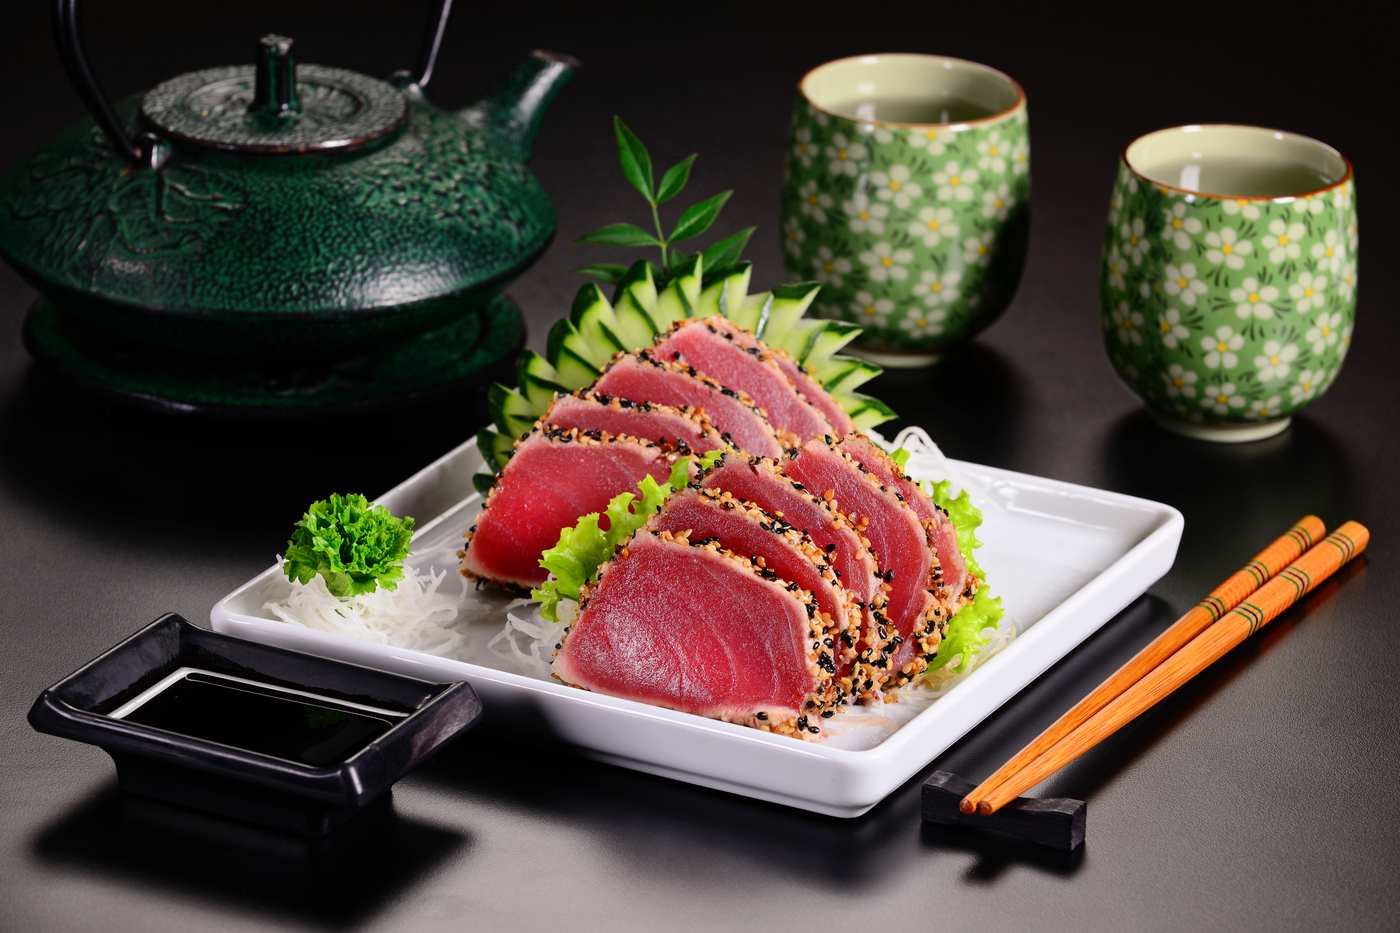 Seared Tuna Steak with Honey-Soy Sauce